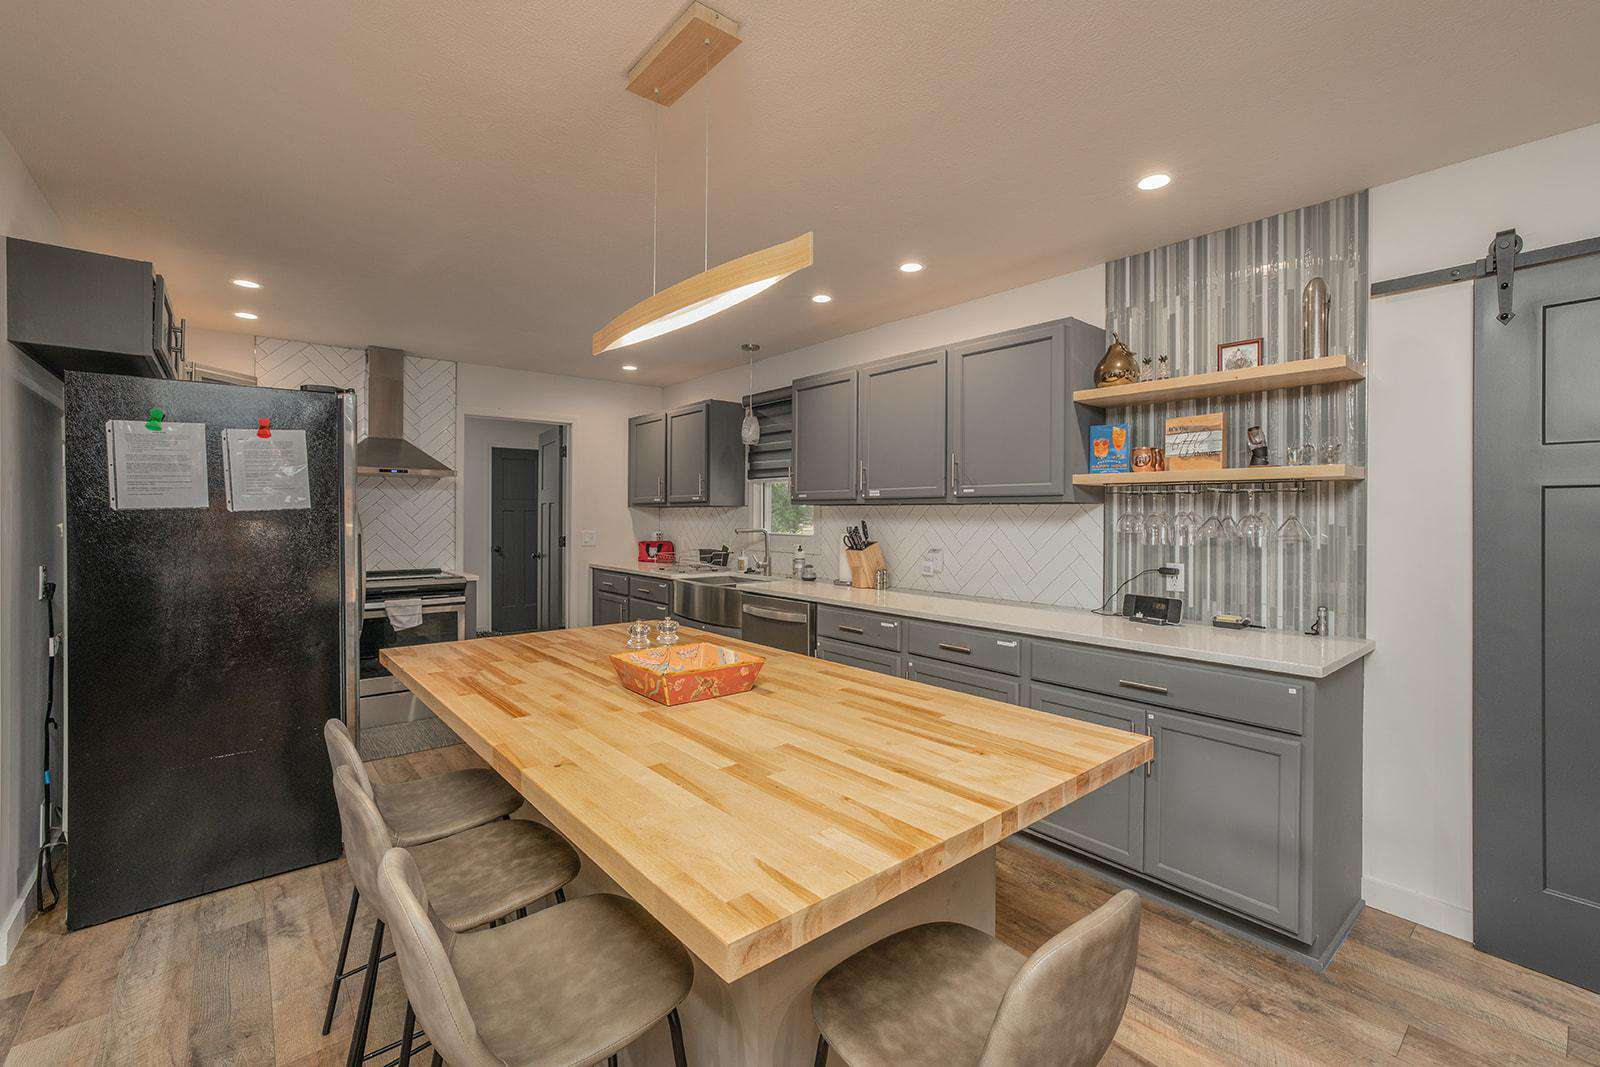 Gorgeous kitchen. Style, function and fully equipped!!